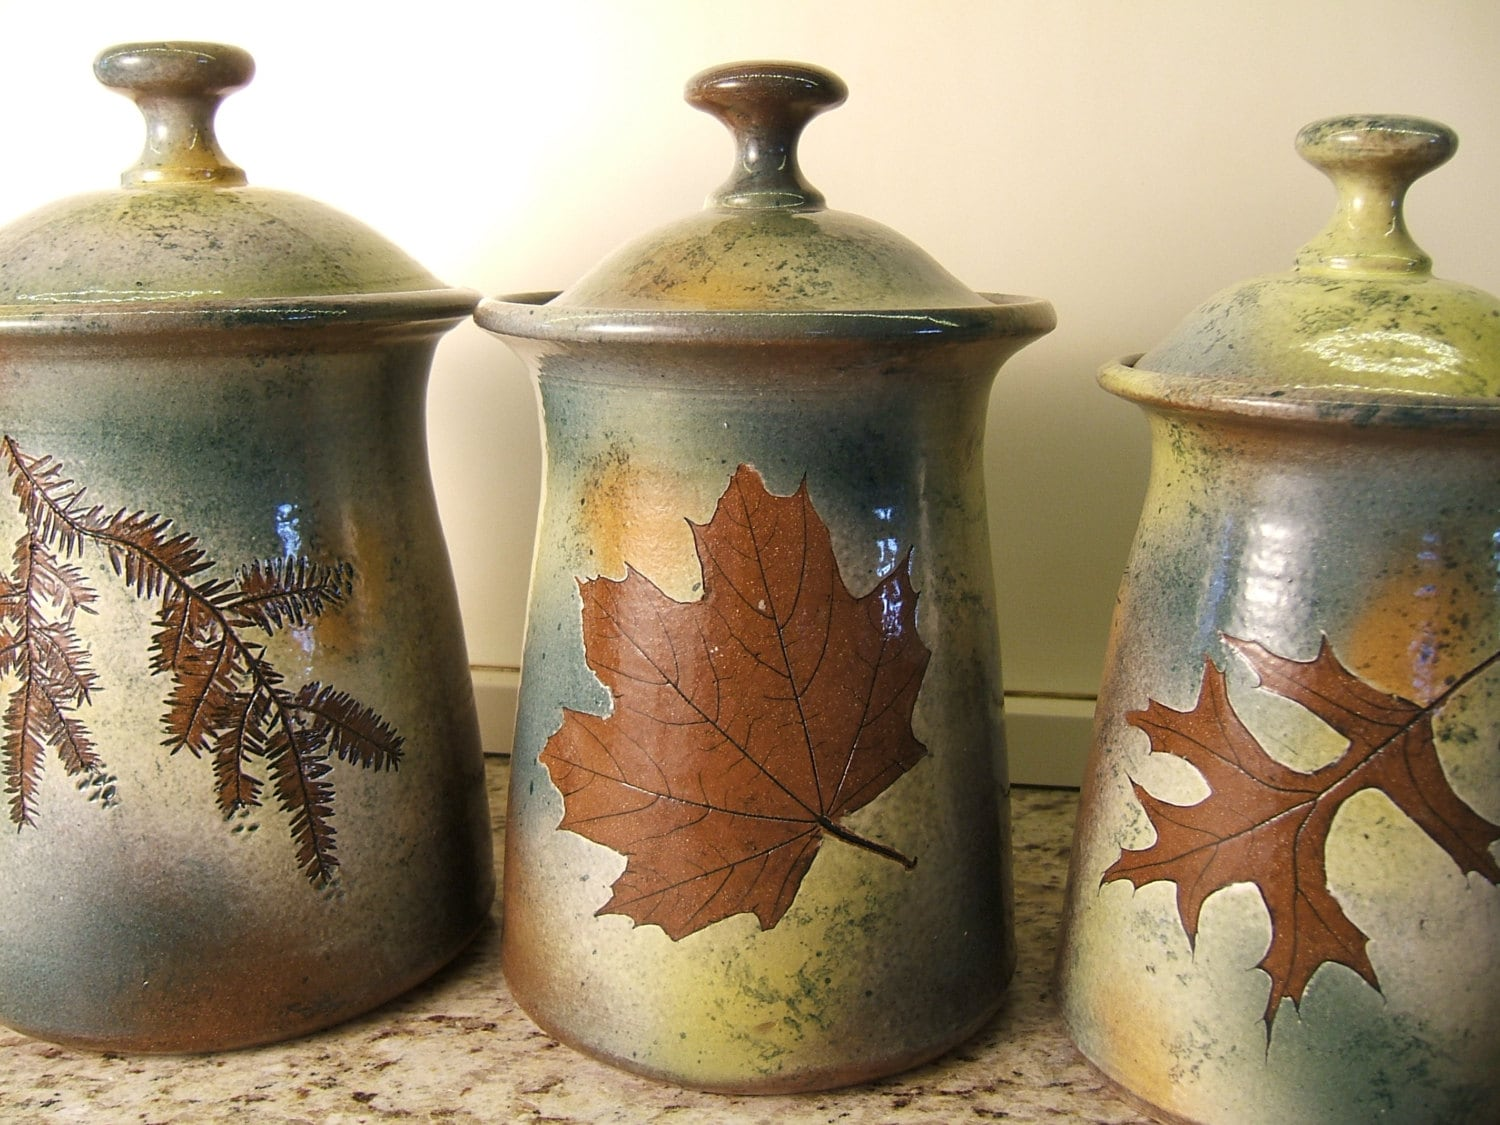 Canister set Lidded Jars Kitchen Canisters with tree leaves in